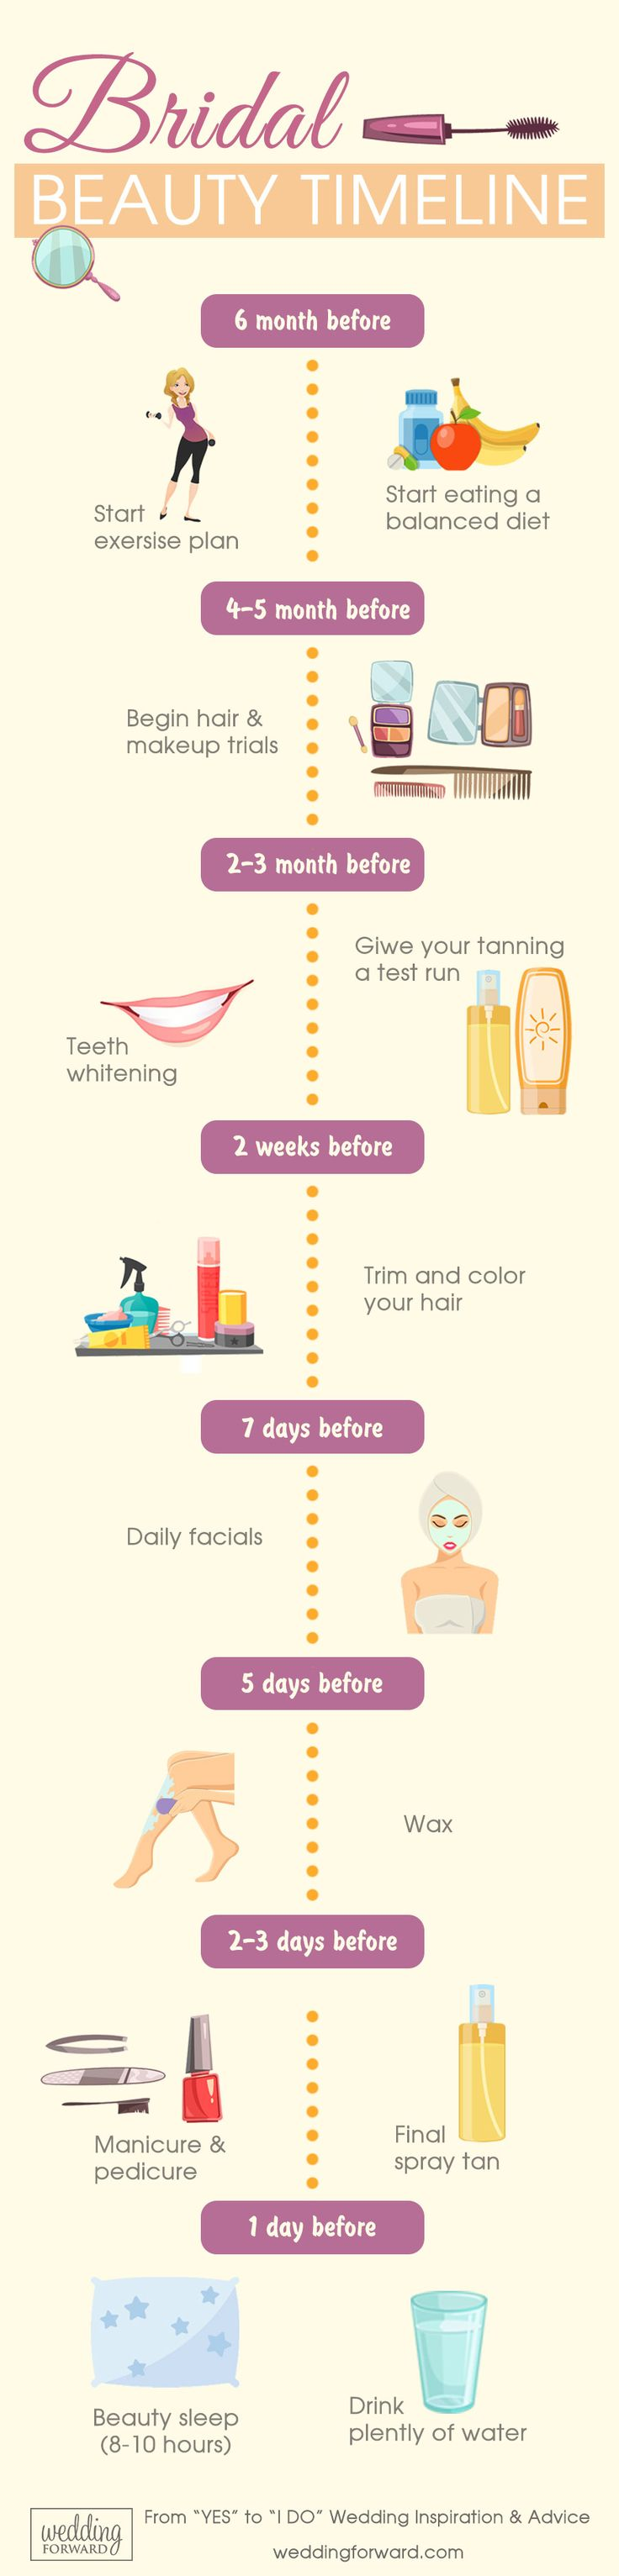 bridal beauty timeline